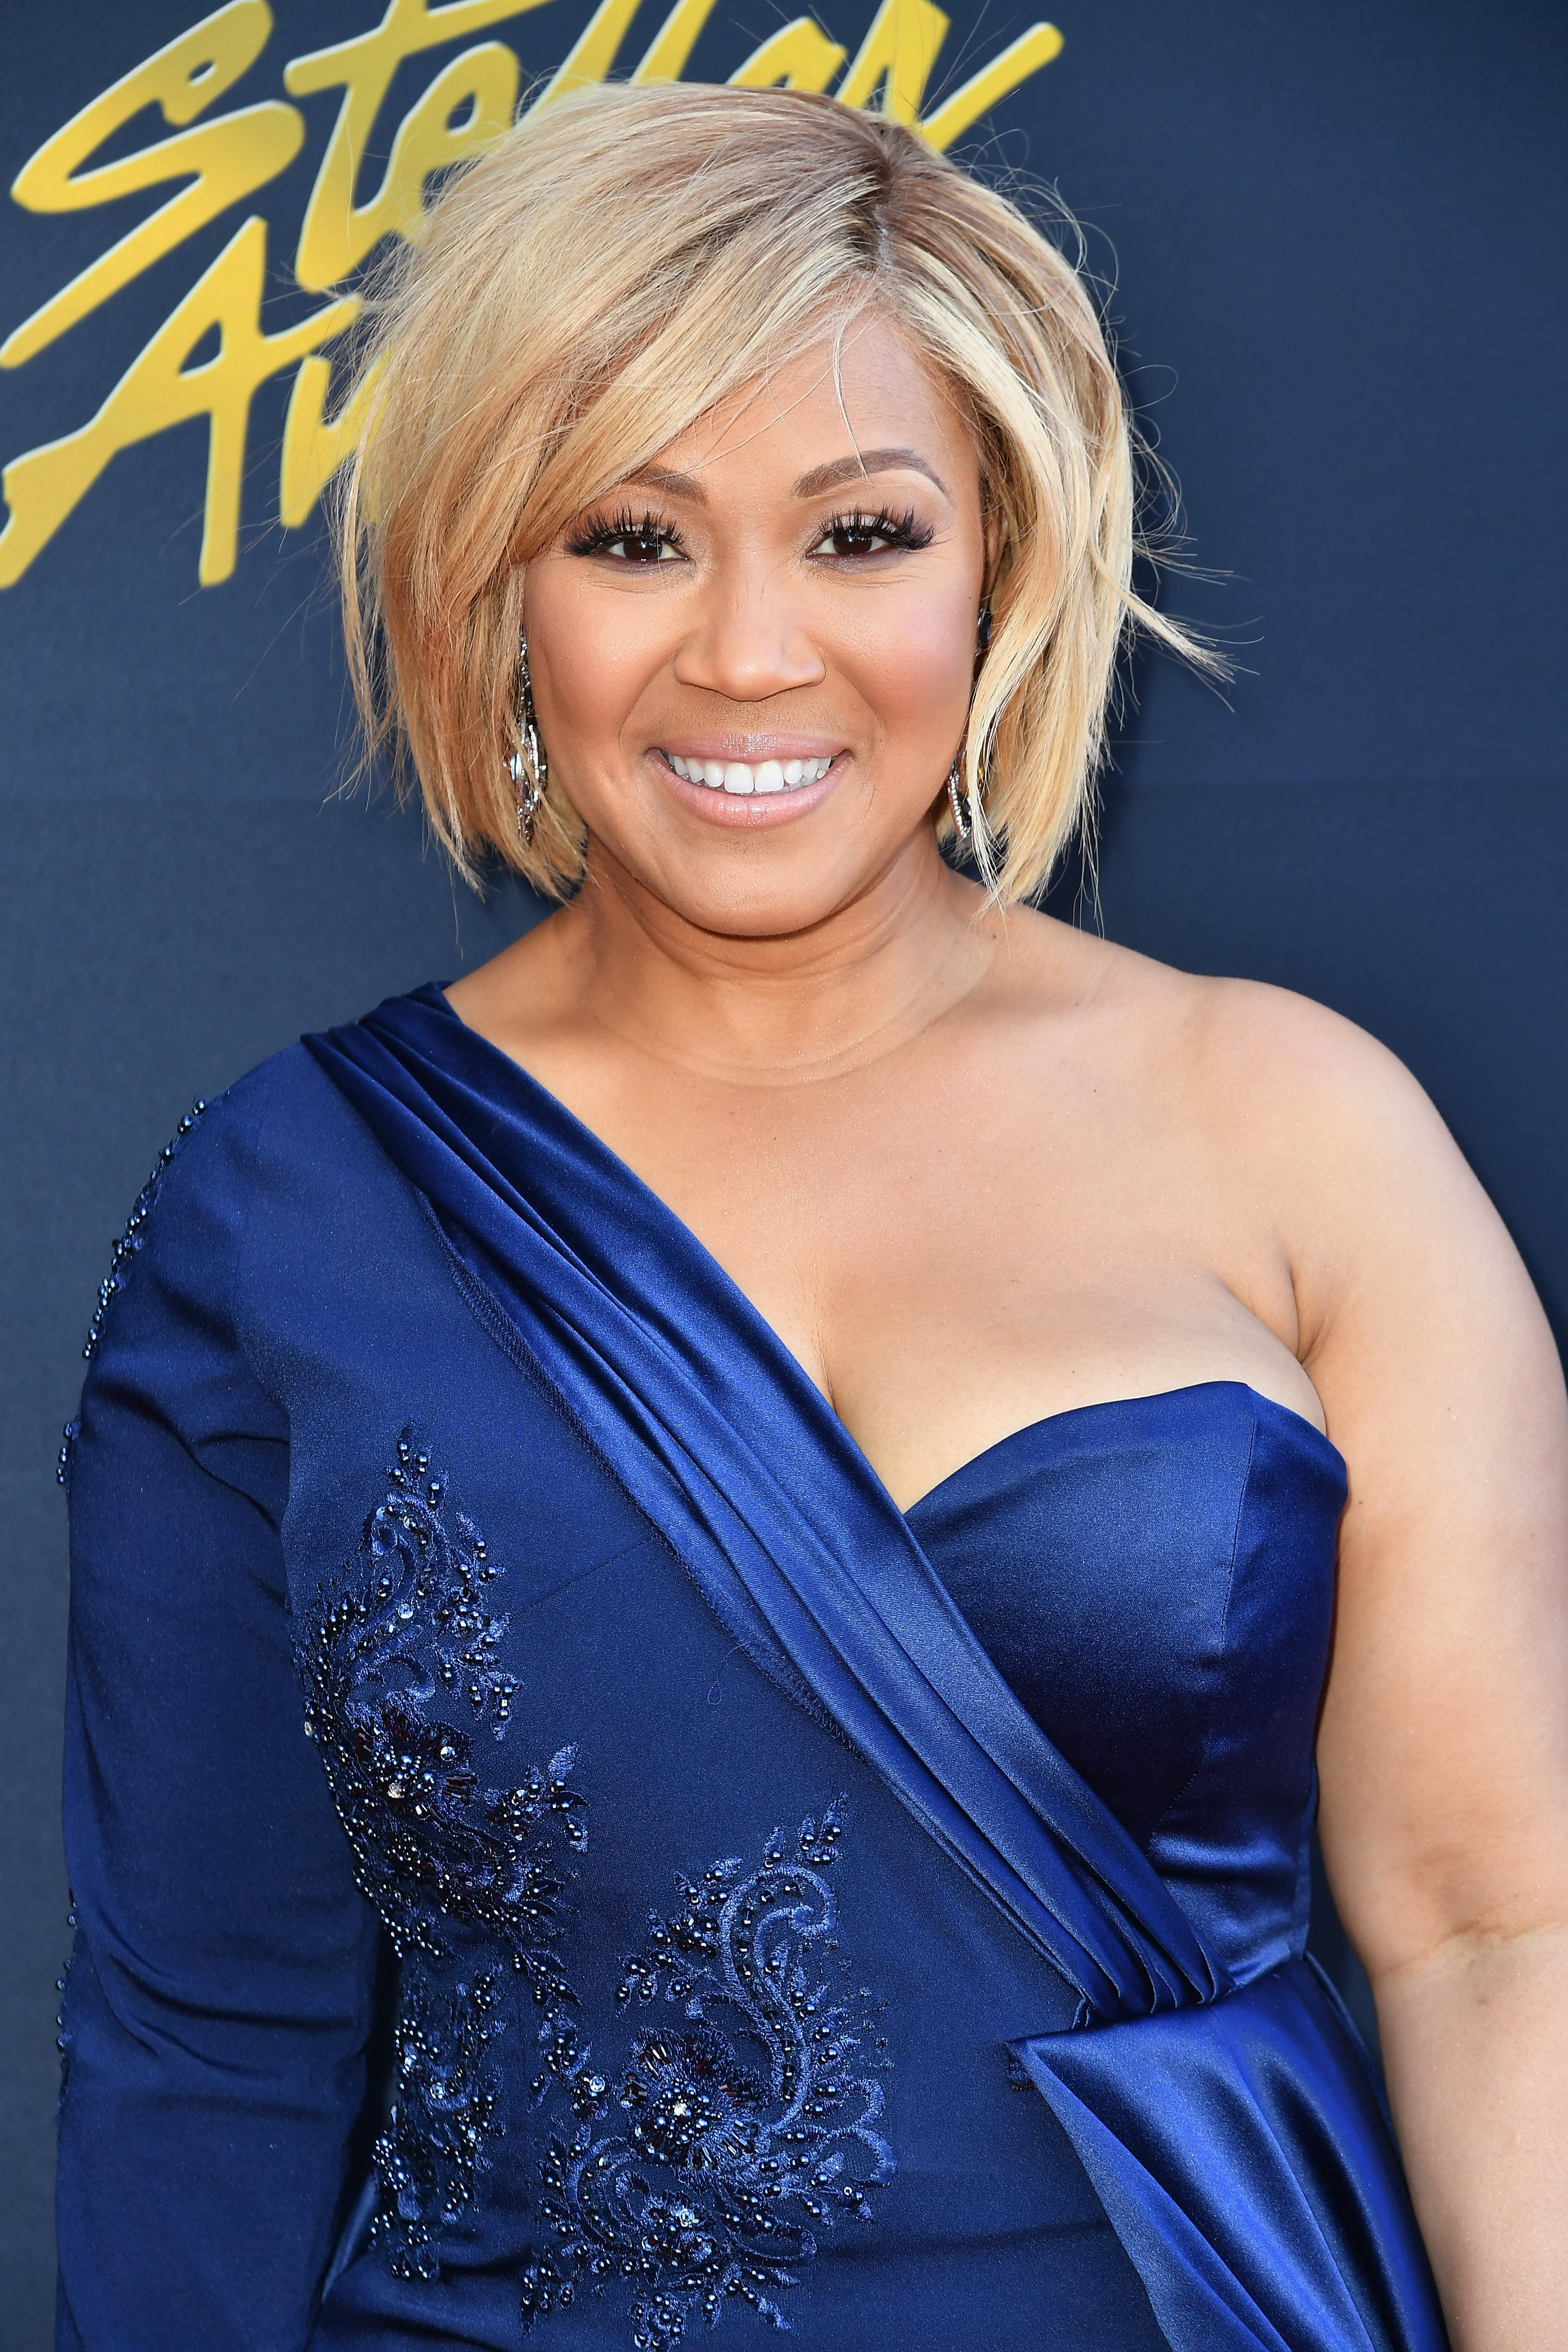 Erica Campbell at the Stellar Gospel Music Awards at the Orleans Arena on March 24, 2018 in Las Vegas, Nevada |Source: Getty Images